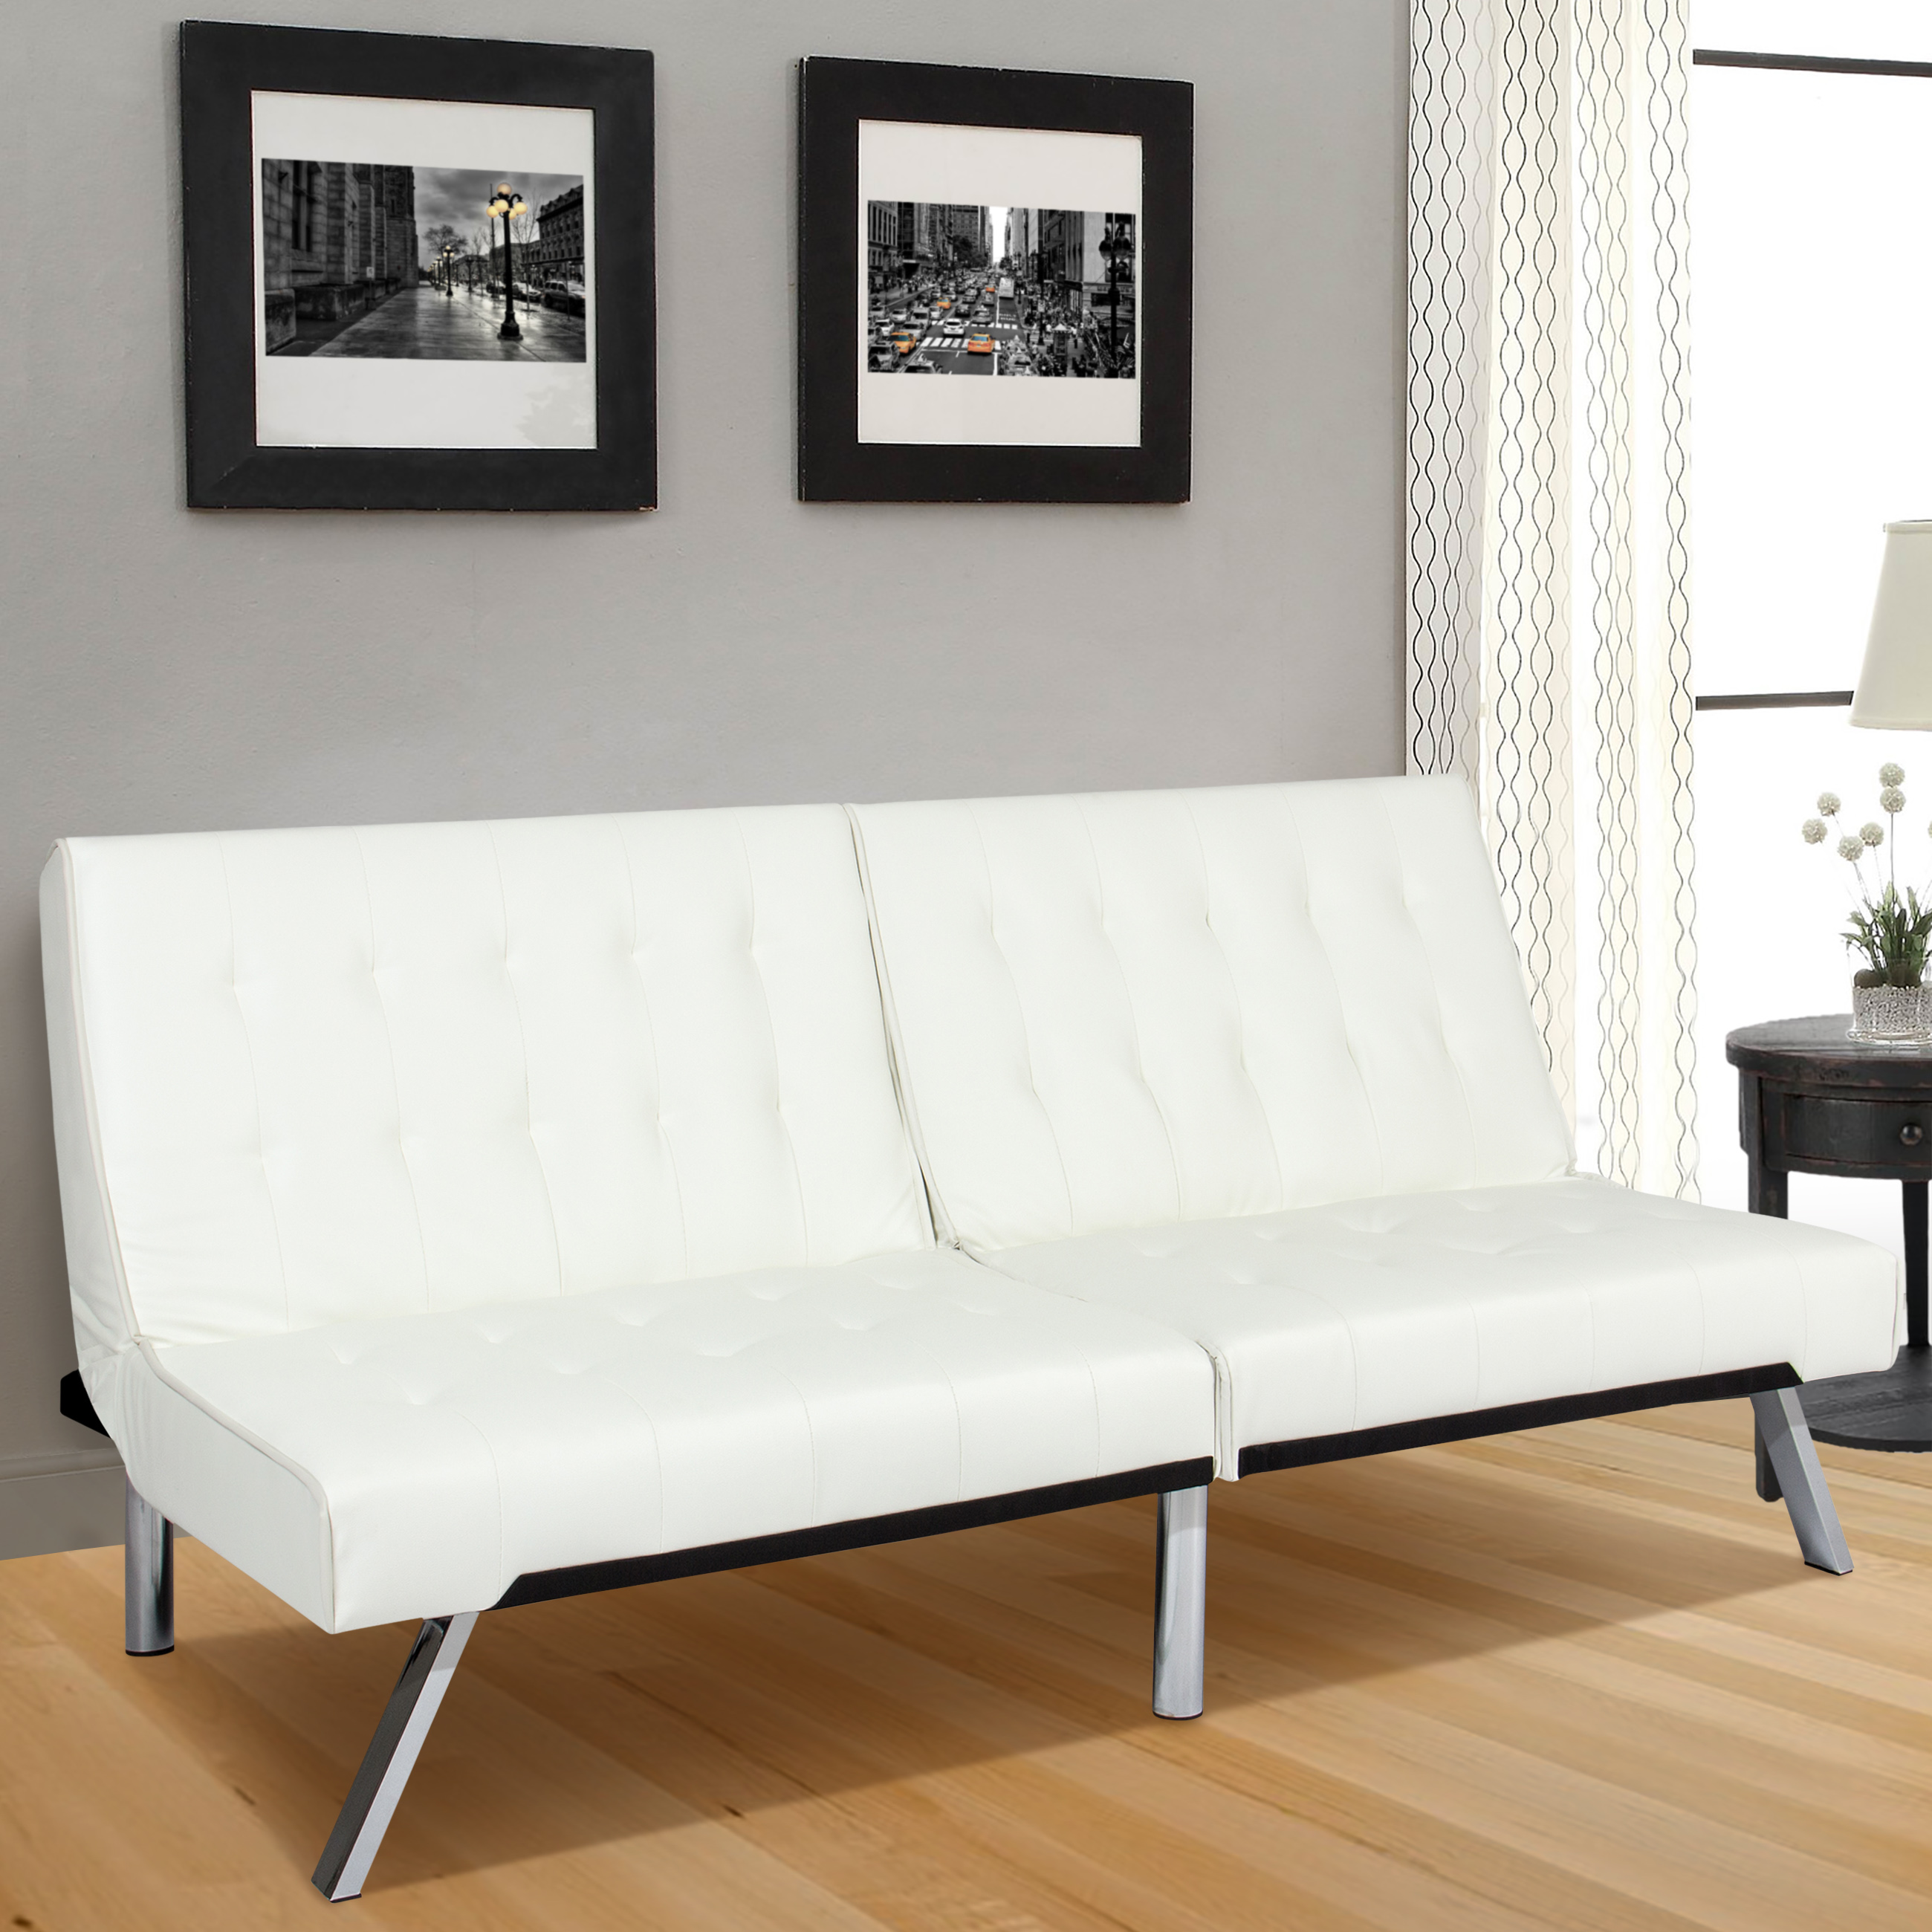 Best Choice Products Modern Leather Reclining Futon Sofa Bed Couch Lounger Sleeper Furniture w  Chrome Legs White by